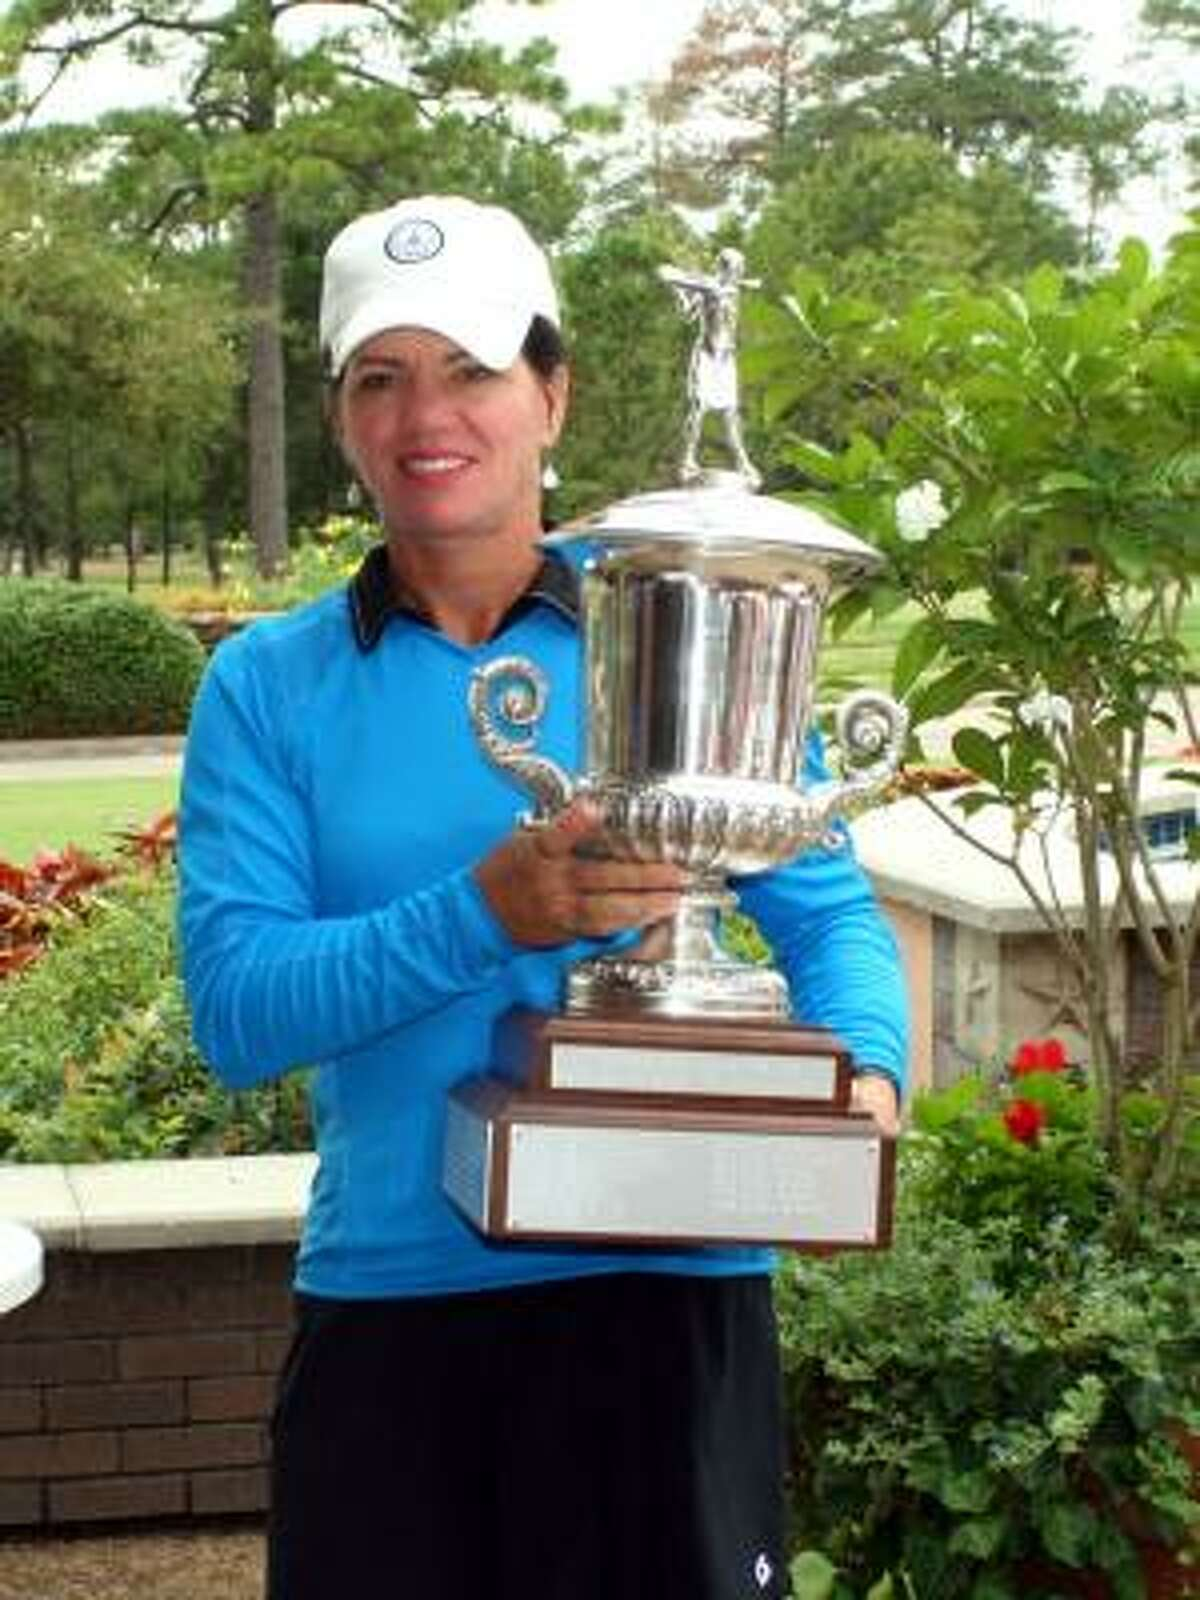 Robin Burke shot a 73 on in the final round of the Women's City Amateur Championship on Thursday to win the three-day tournament with an even-par 216.